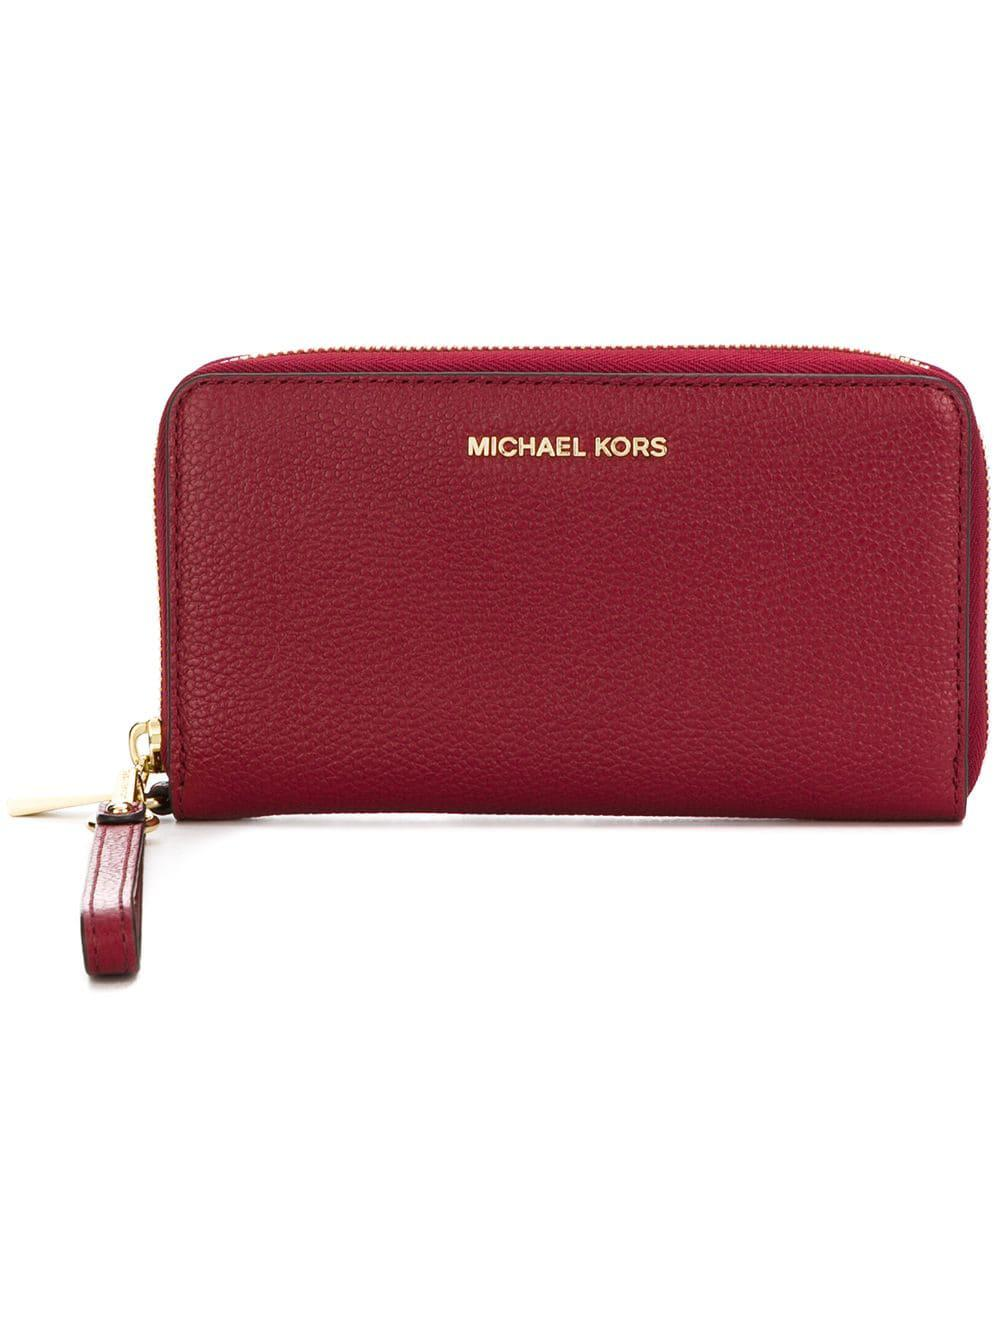 0a1f05449b27 Michael Michael Kors Mercer Leather Wristlet in Red - Lyst